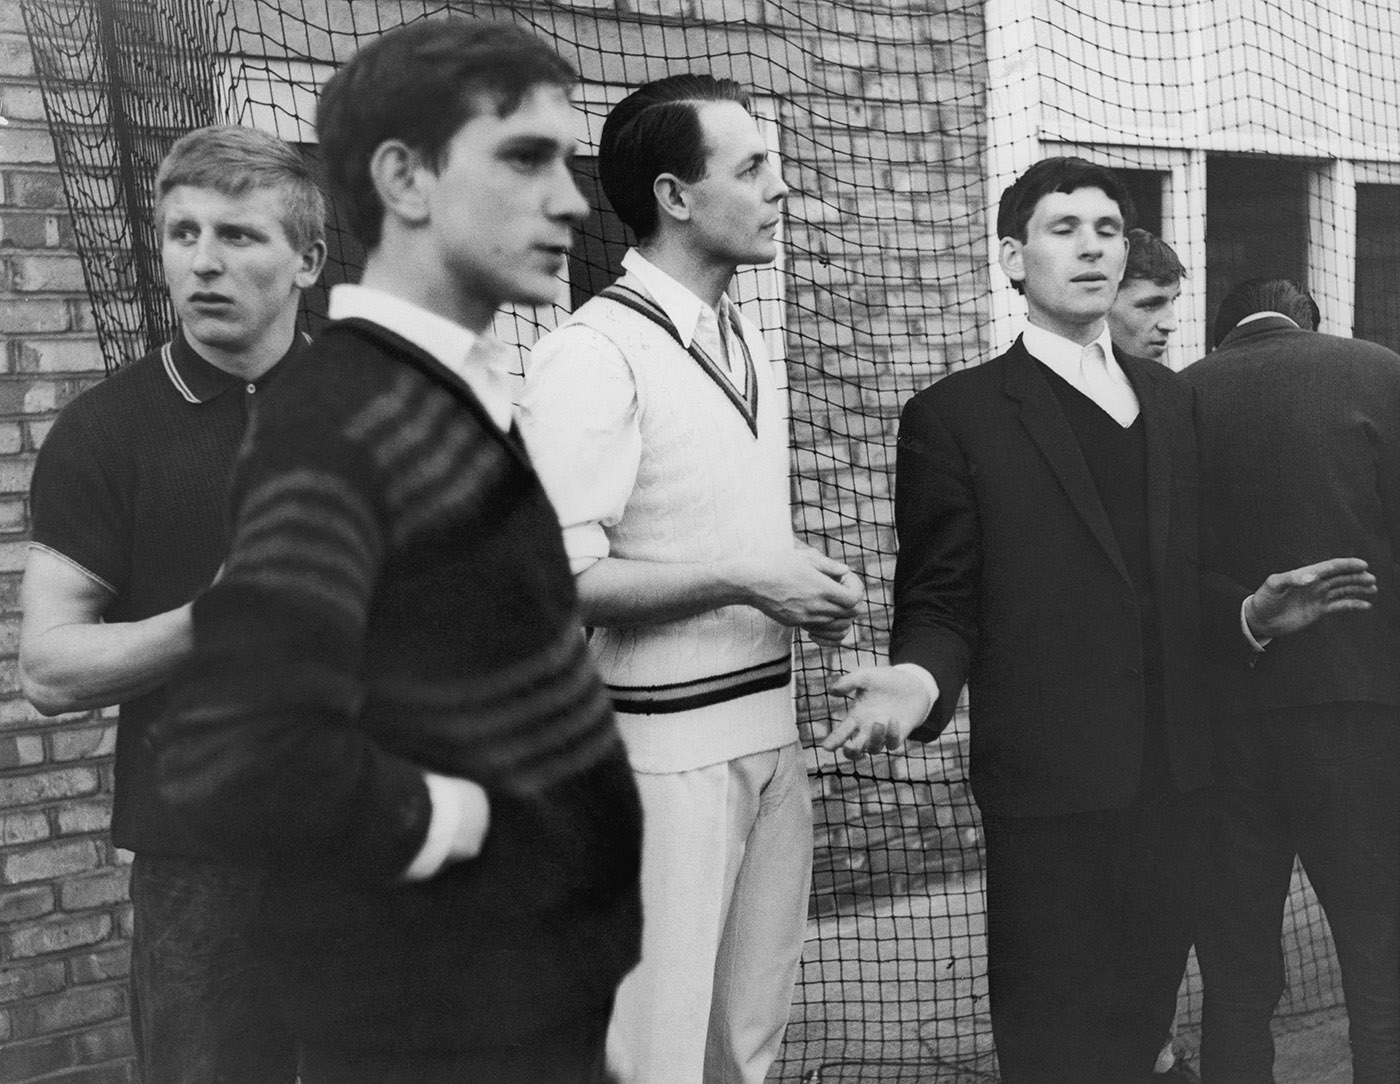 David Sheppard (third from left) was perhaps the first cricketer to speak out against playing apartheid South Africa